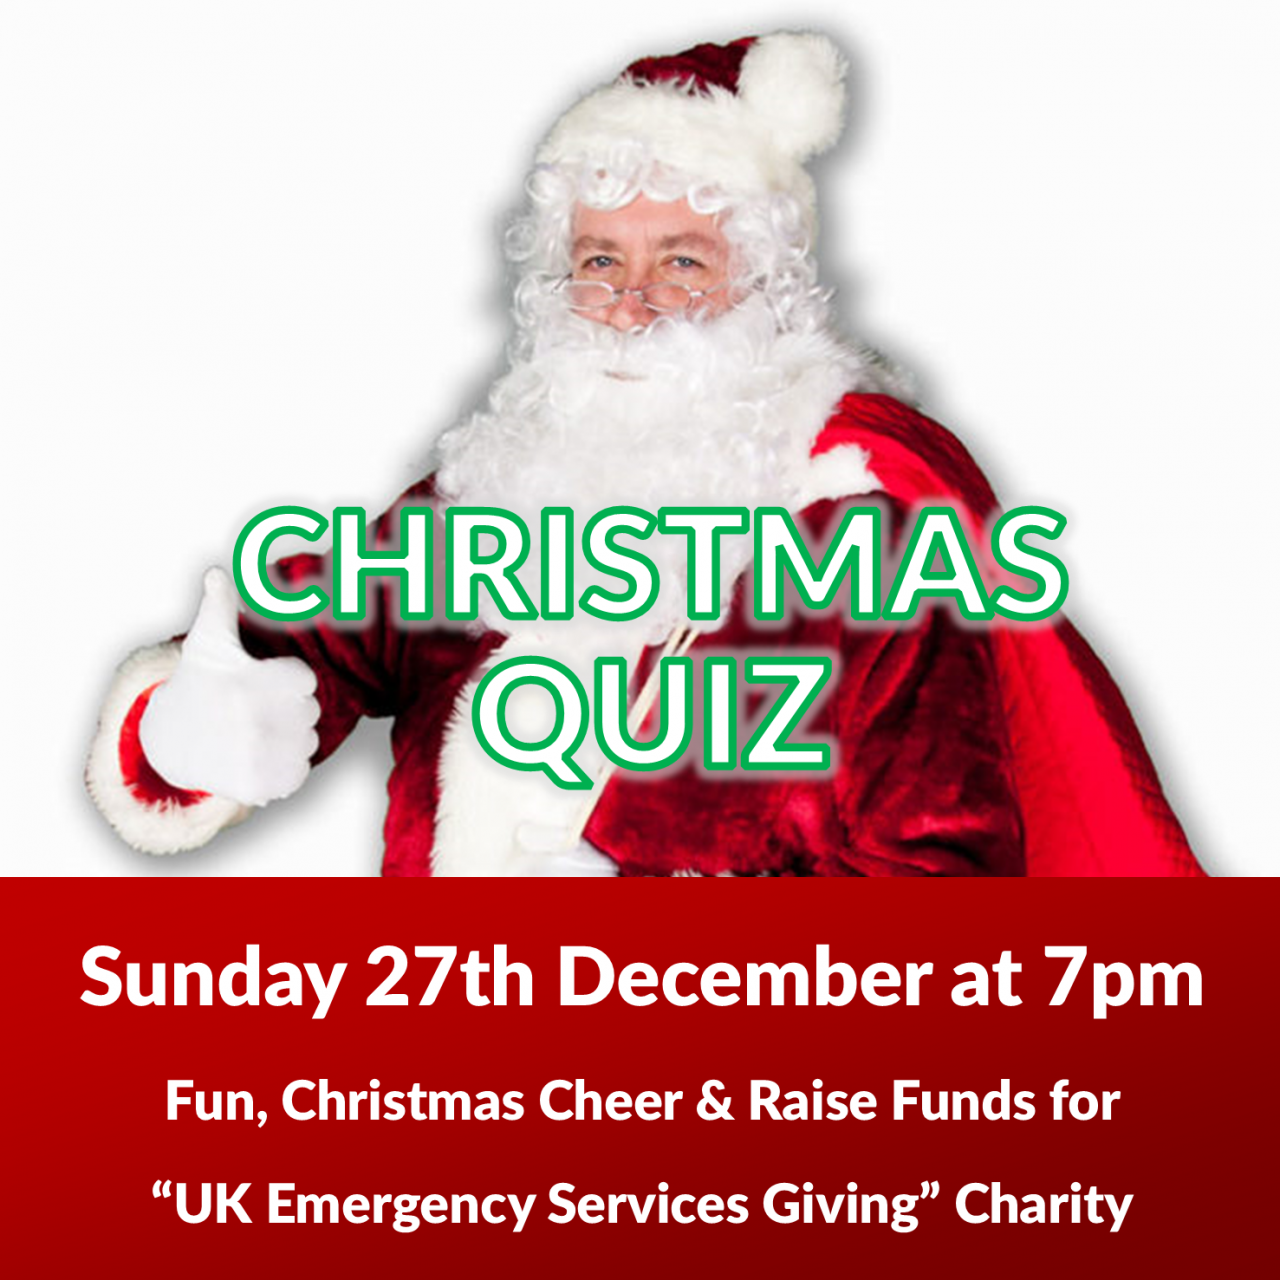 Christmas Charity Quiz raising funds for UK Emergency Responders